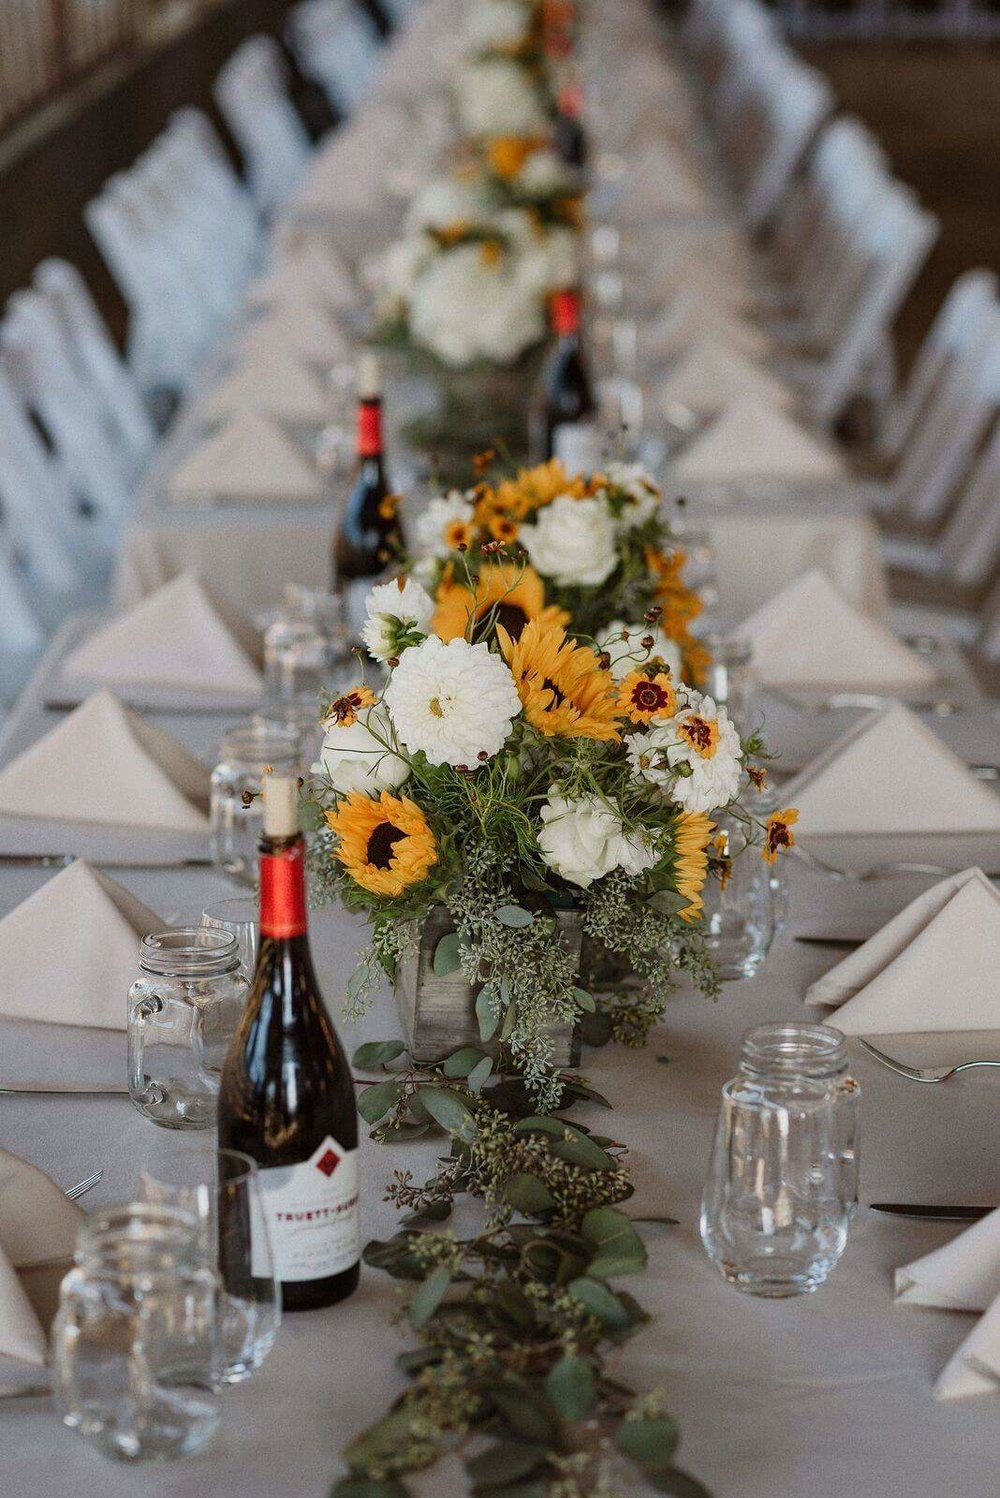 2017 Cow Track Ranch wedding flowers1.jpg